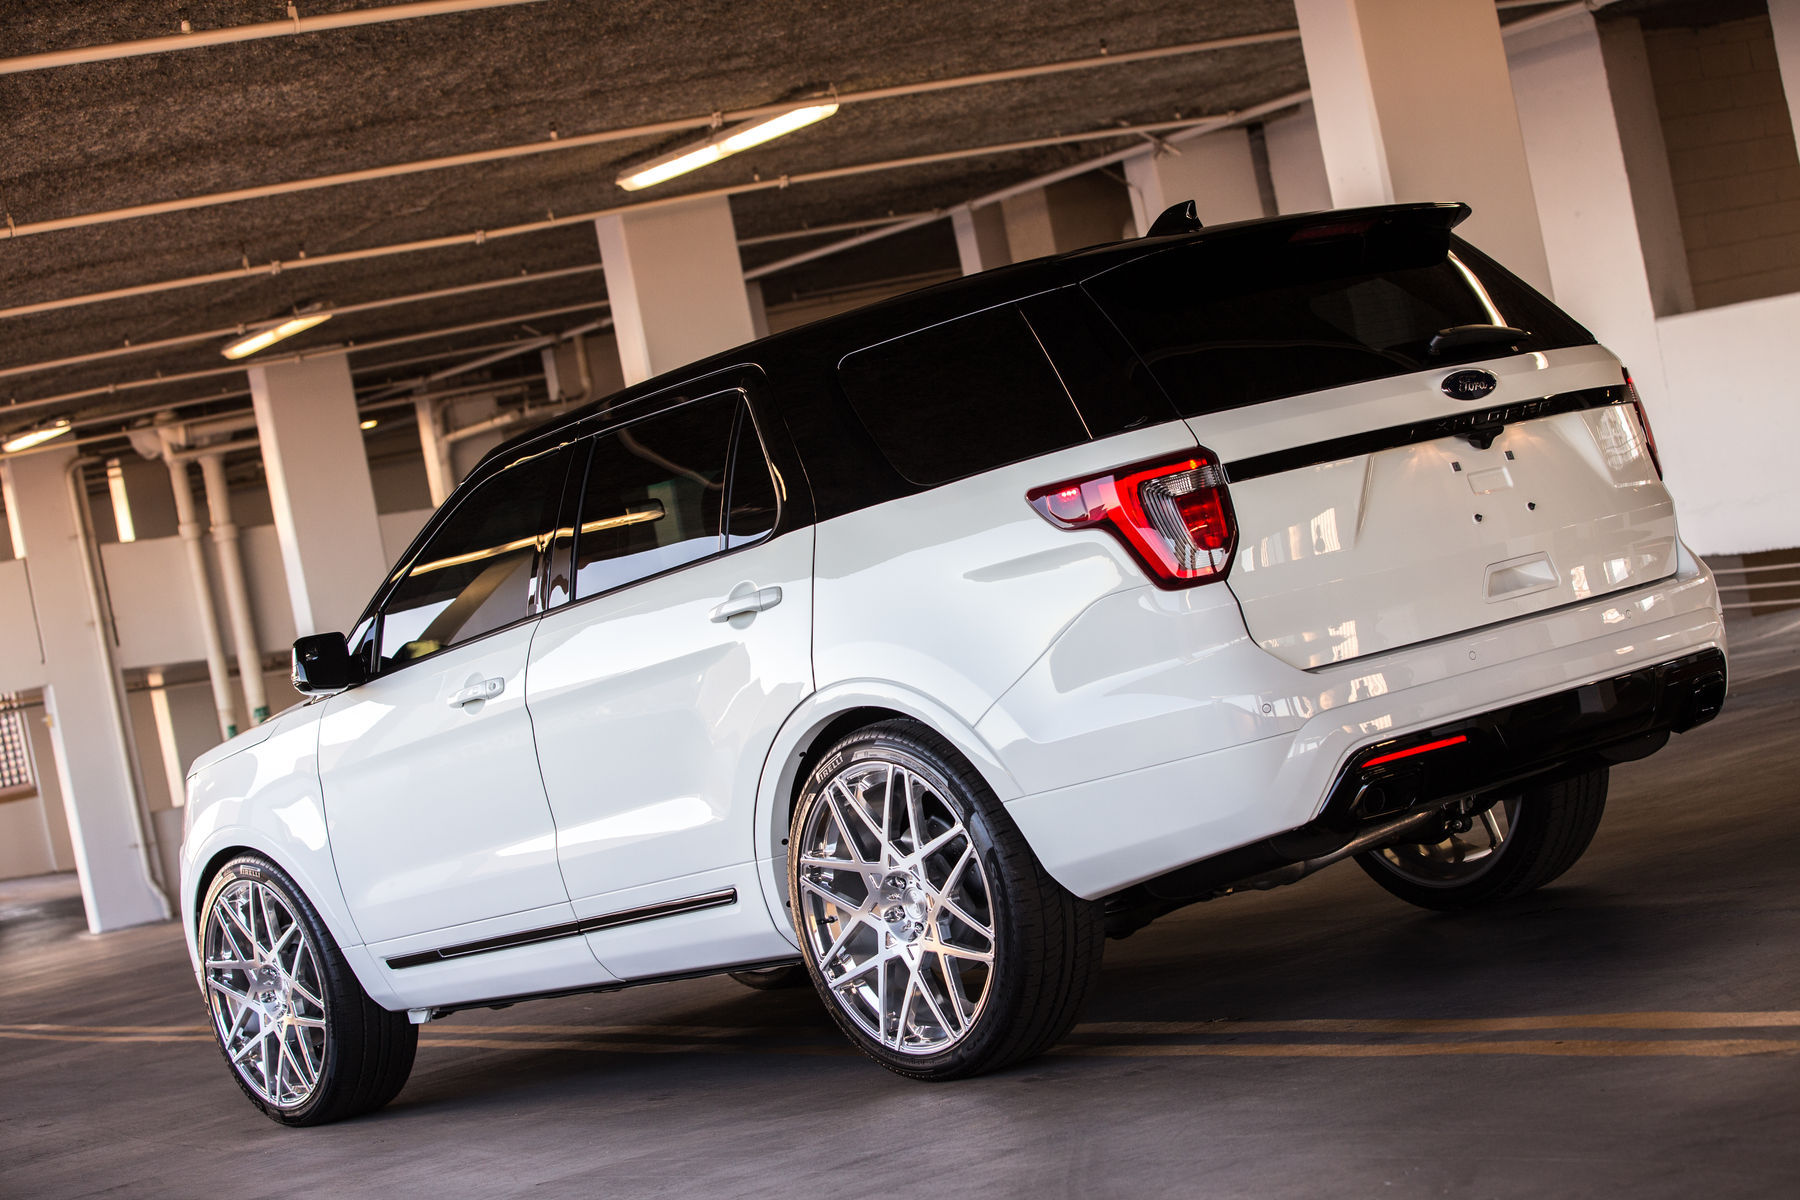 2015 Ford Explorer Sport | 2015 MAD Industries Ford Explorer Sport - Rear Angled View